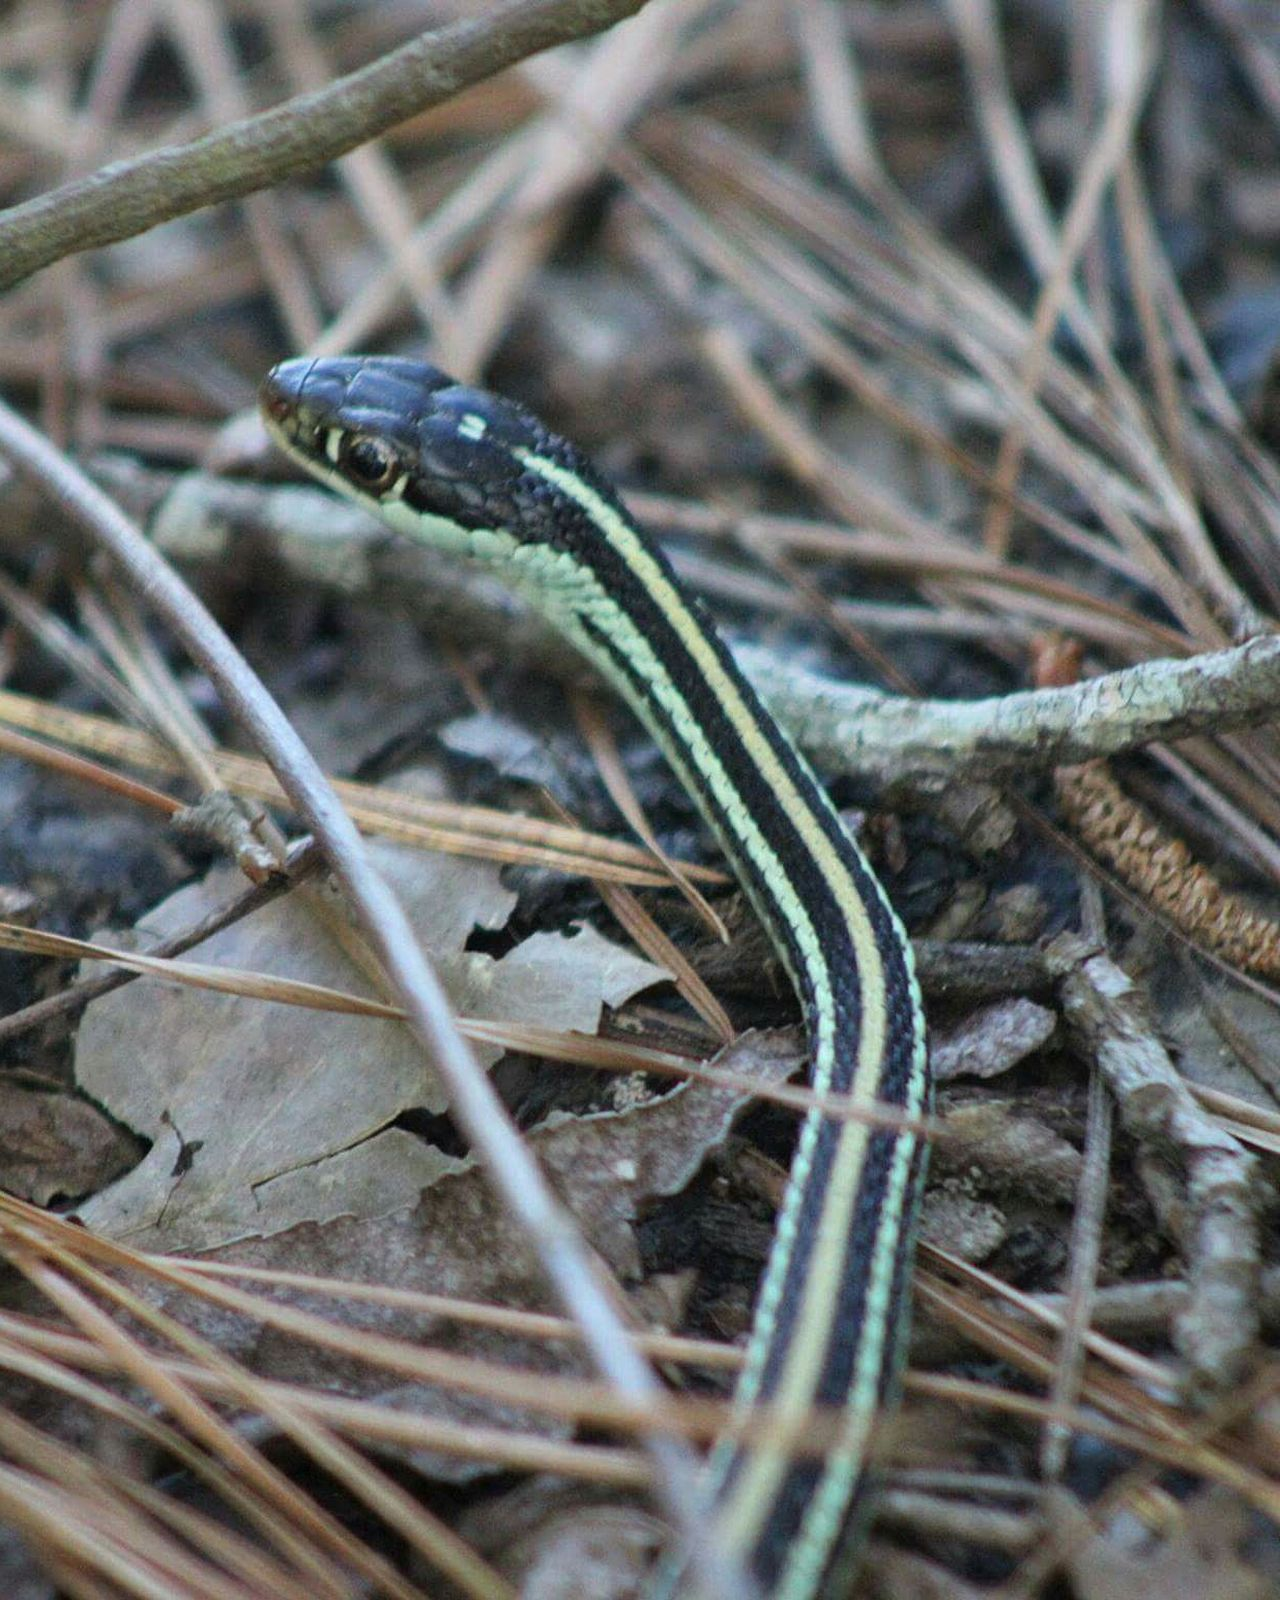 An Eastern ribbon snake, shy little guy. Just wanted to get away. One Animal Animal Themes Animals In The Wild Reptile Animal Wildlife Nature Focus On Foreground No People Outdoors Close-up Day Eyemphotos Naturelovers Eye Em Nature Lover Popular Photos Eastern Ribbon Snake Naturephotography Colorful Snakes Parks & Ponds Texas Parks